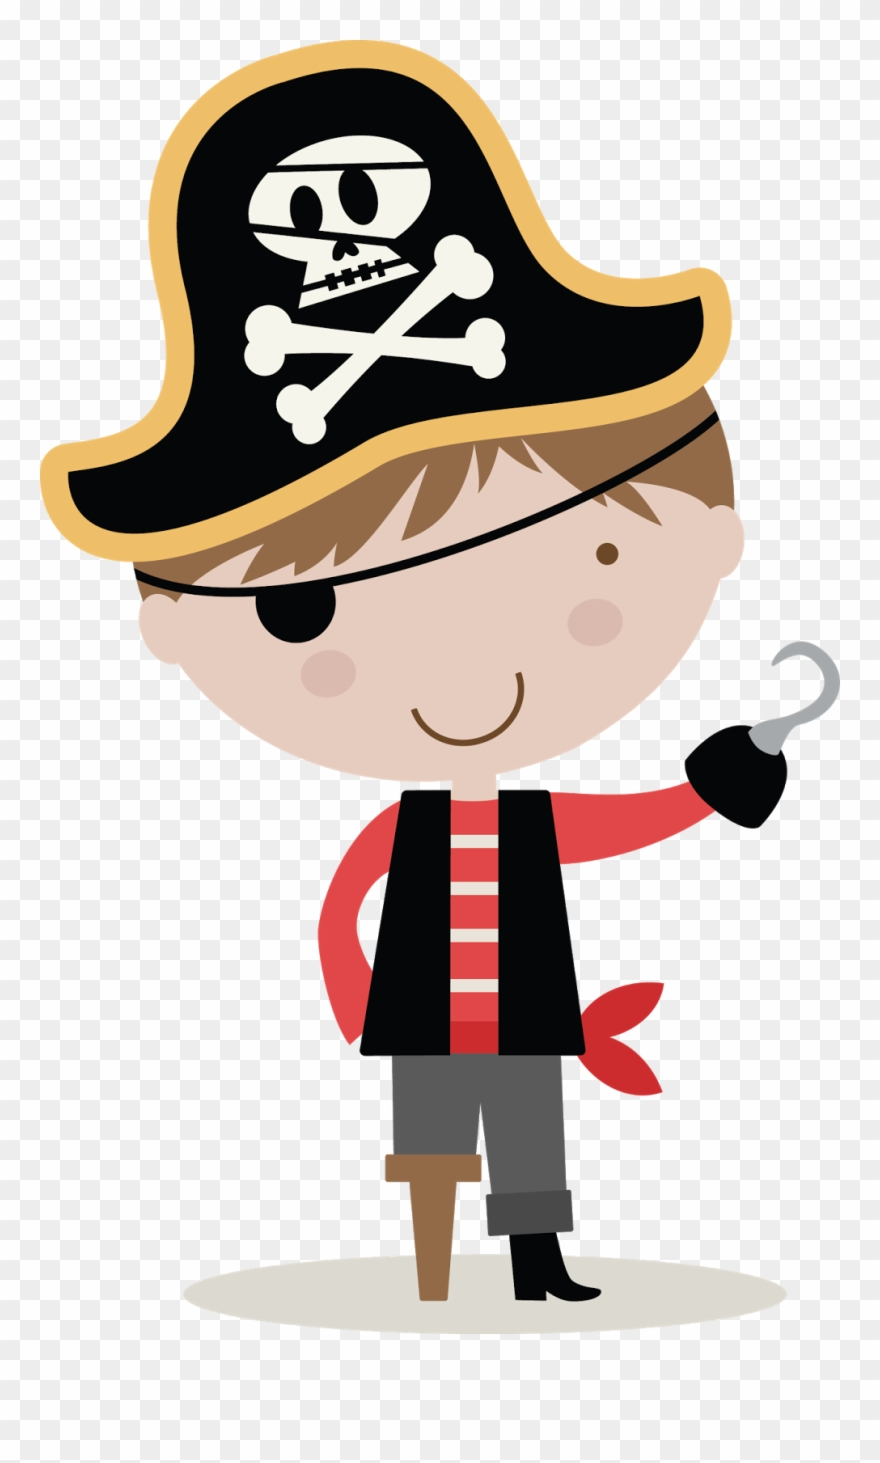 Pirate clipart for kids free